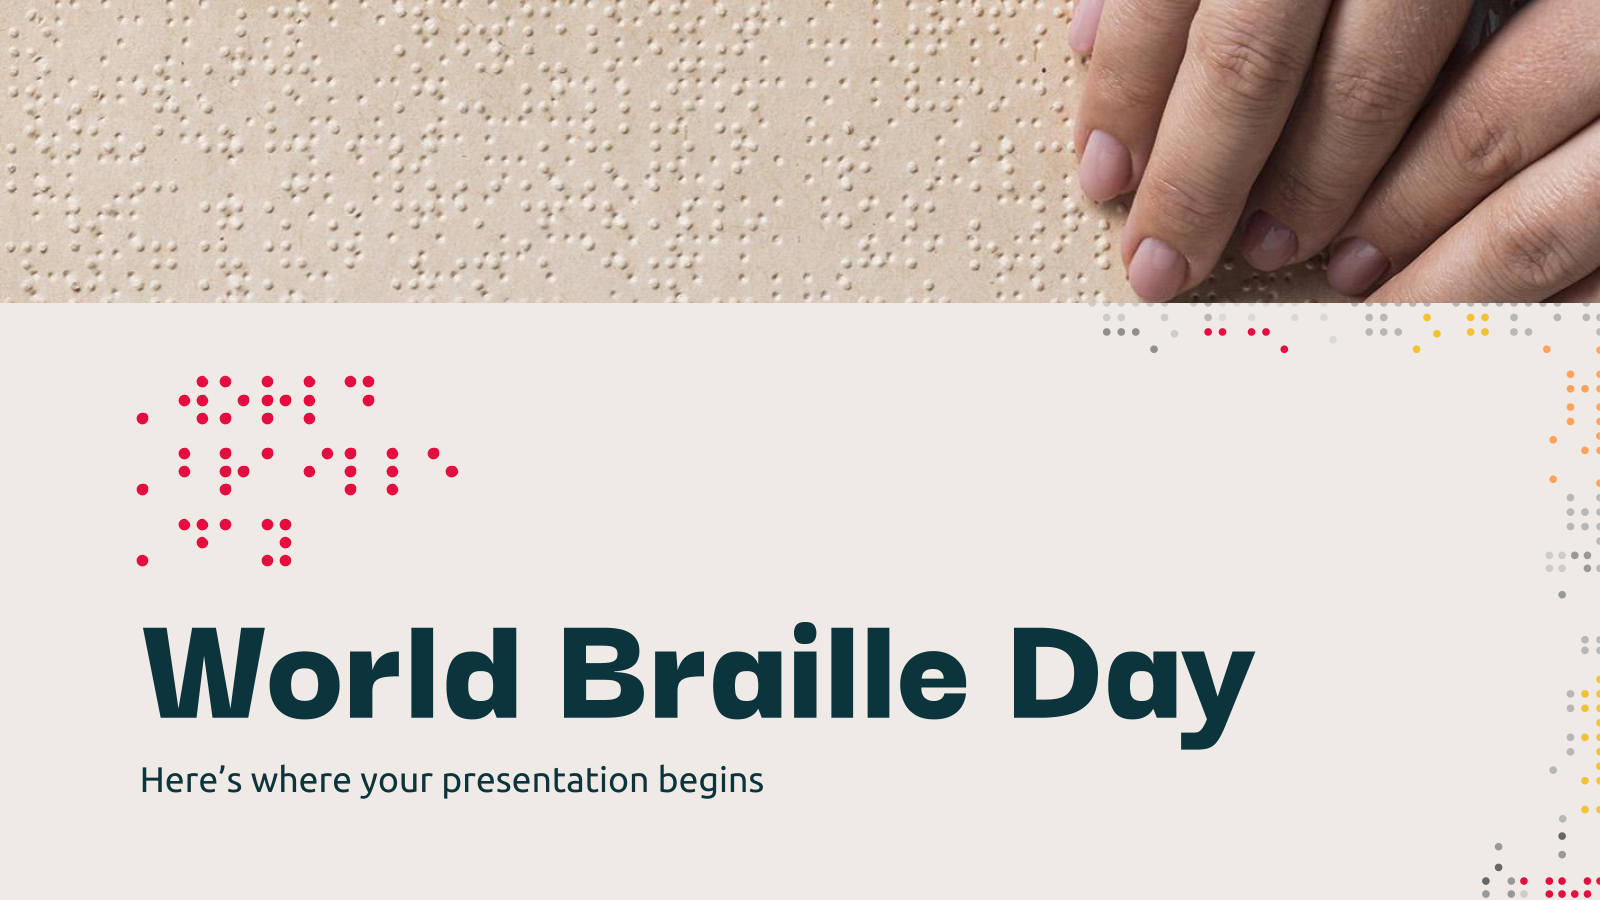 World Braille Day presentation template